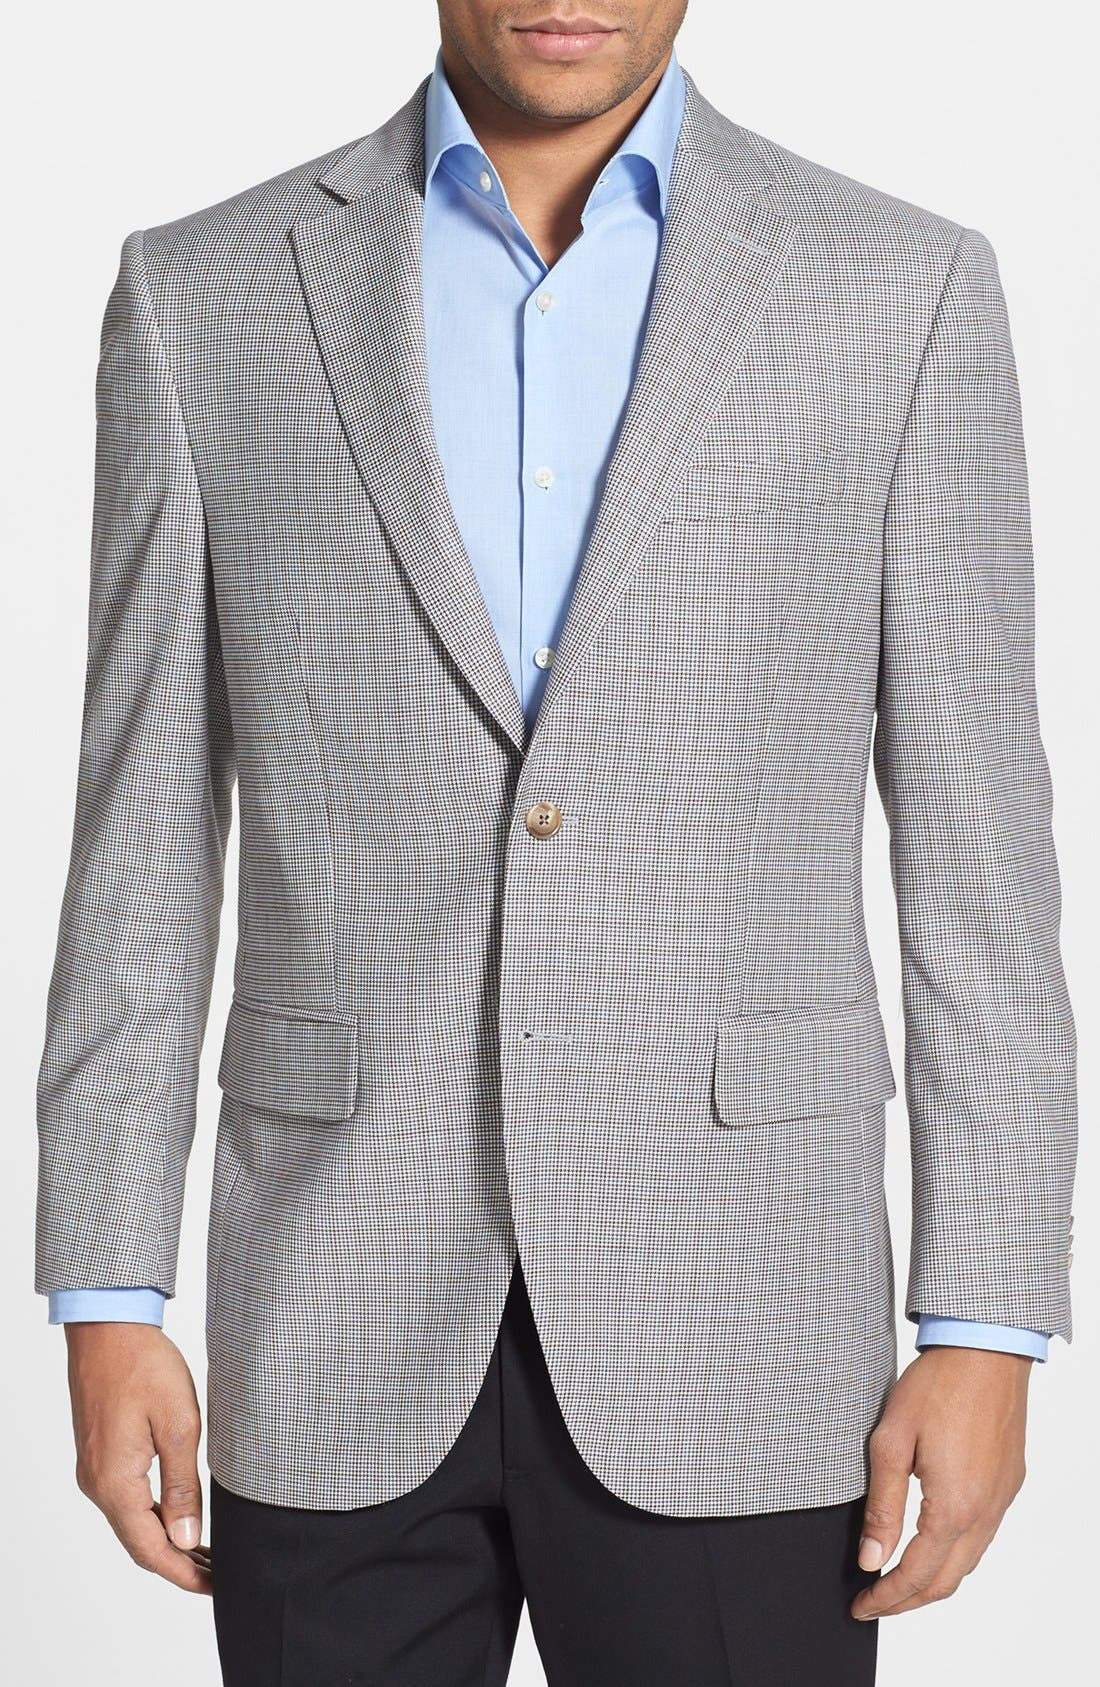 Main Image - Peter Millar Classic Fit Check Sportcoat